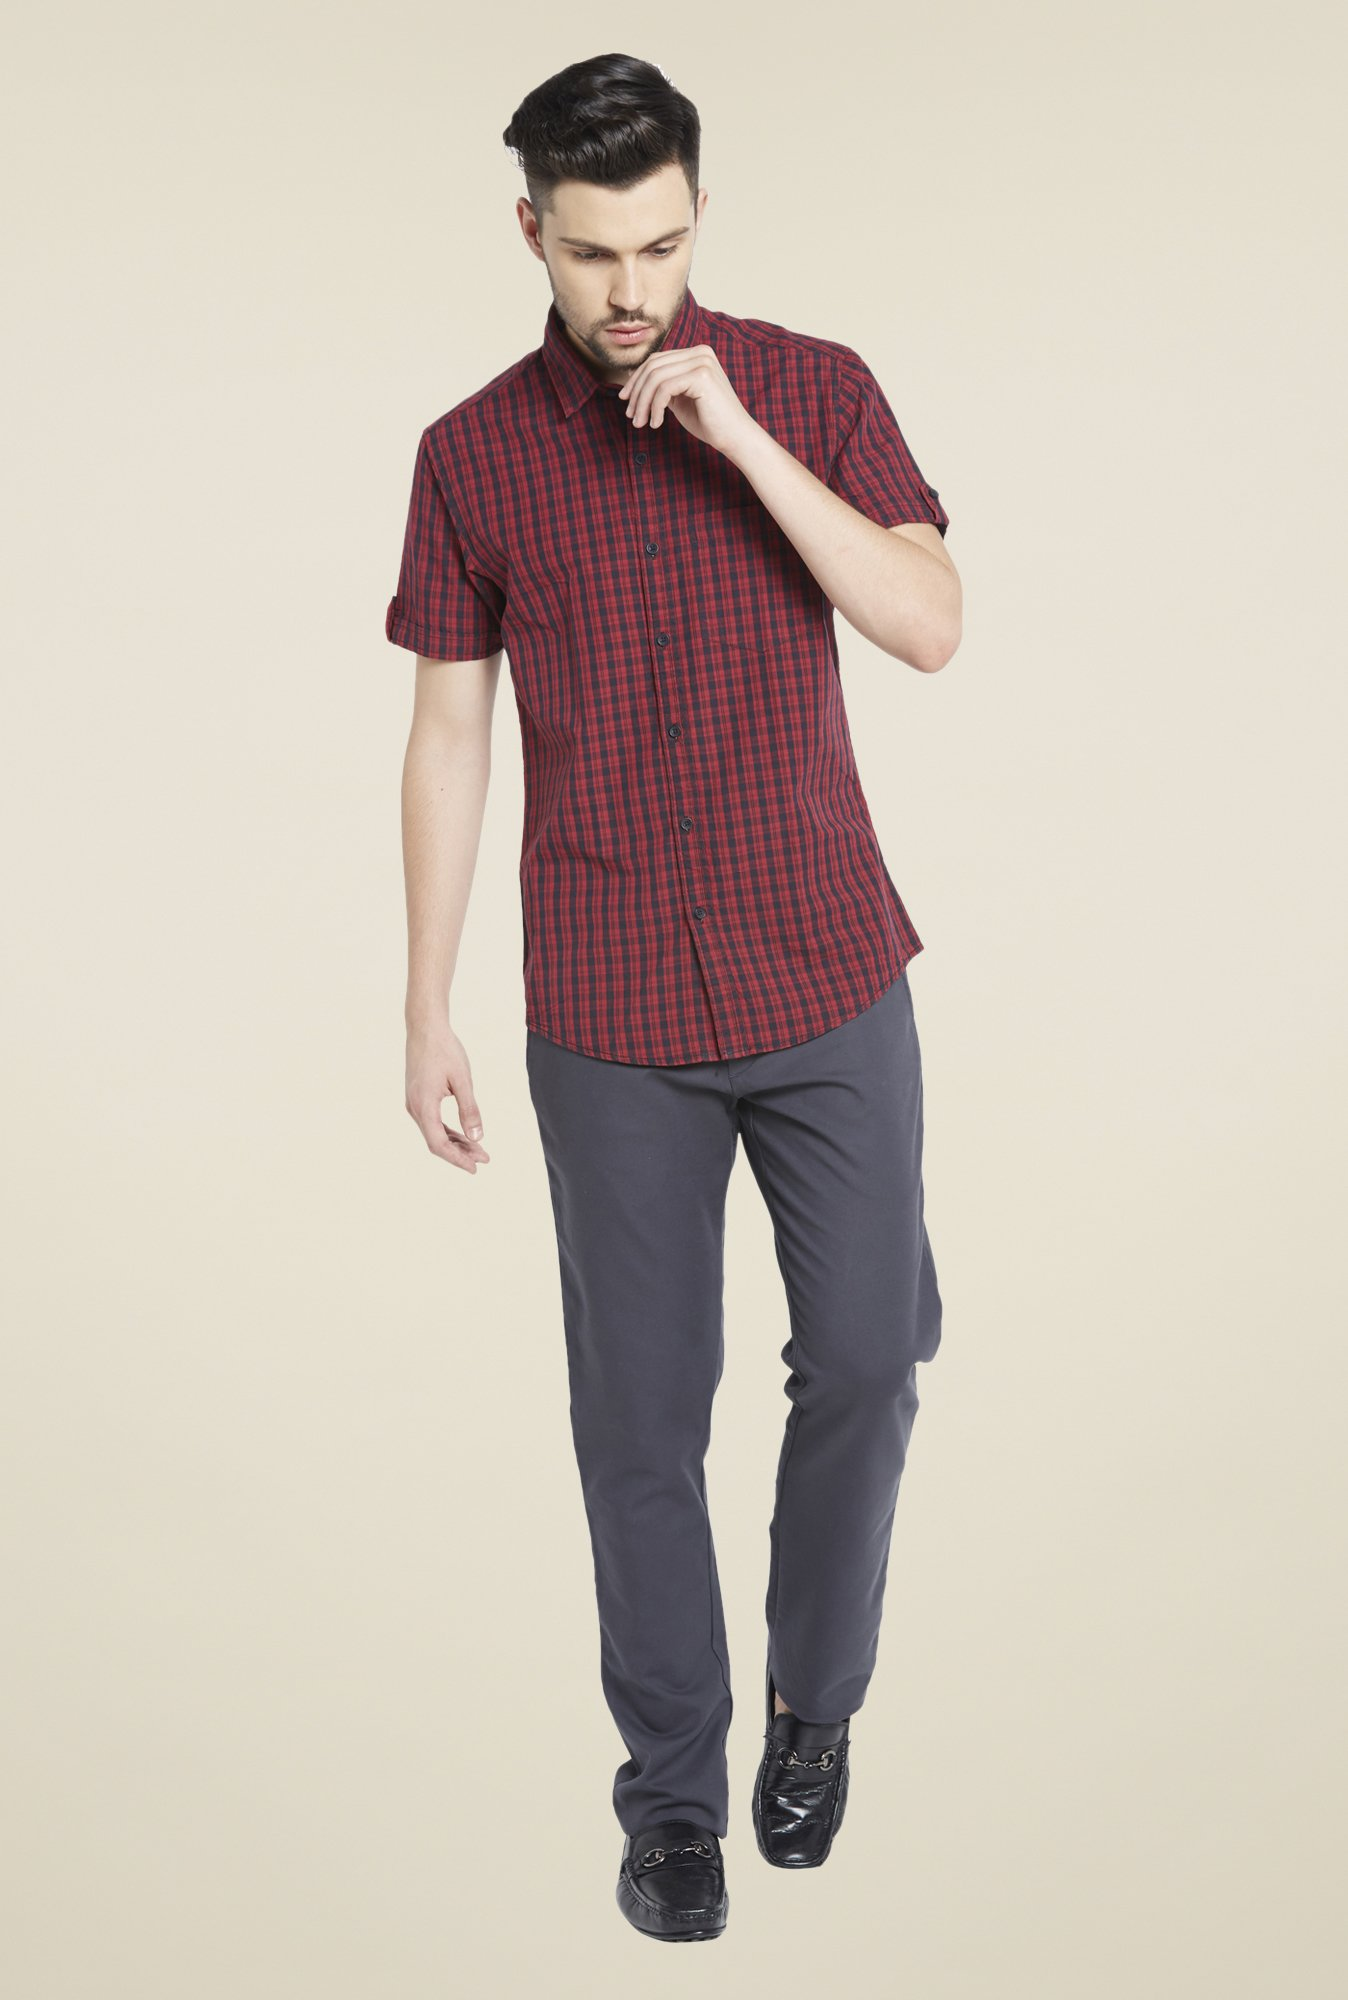 Globus Red & Black Checks Shirt